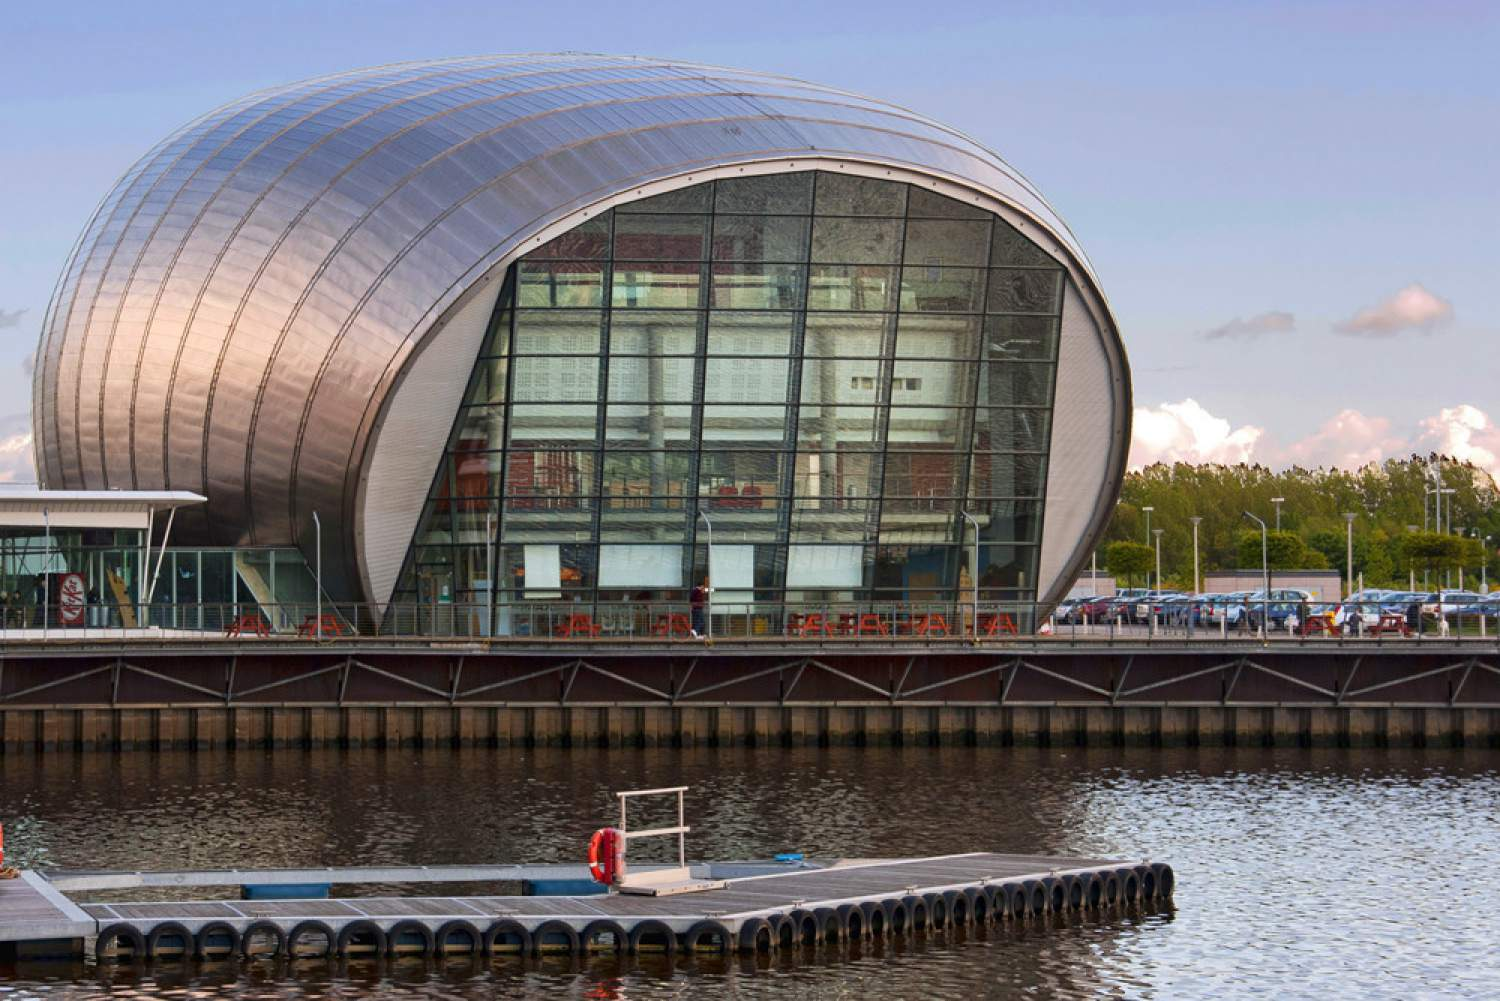 Glasgow's science center by the Clyde river